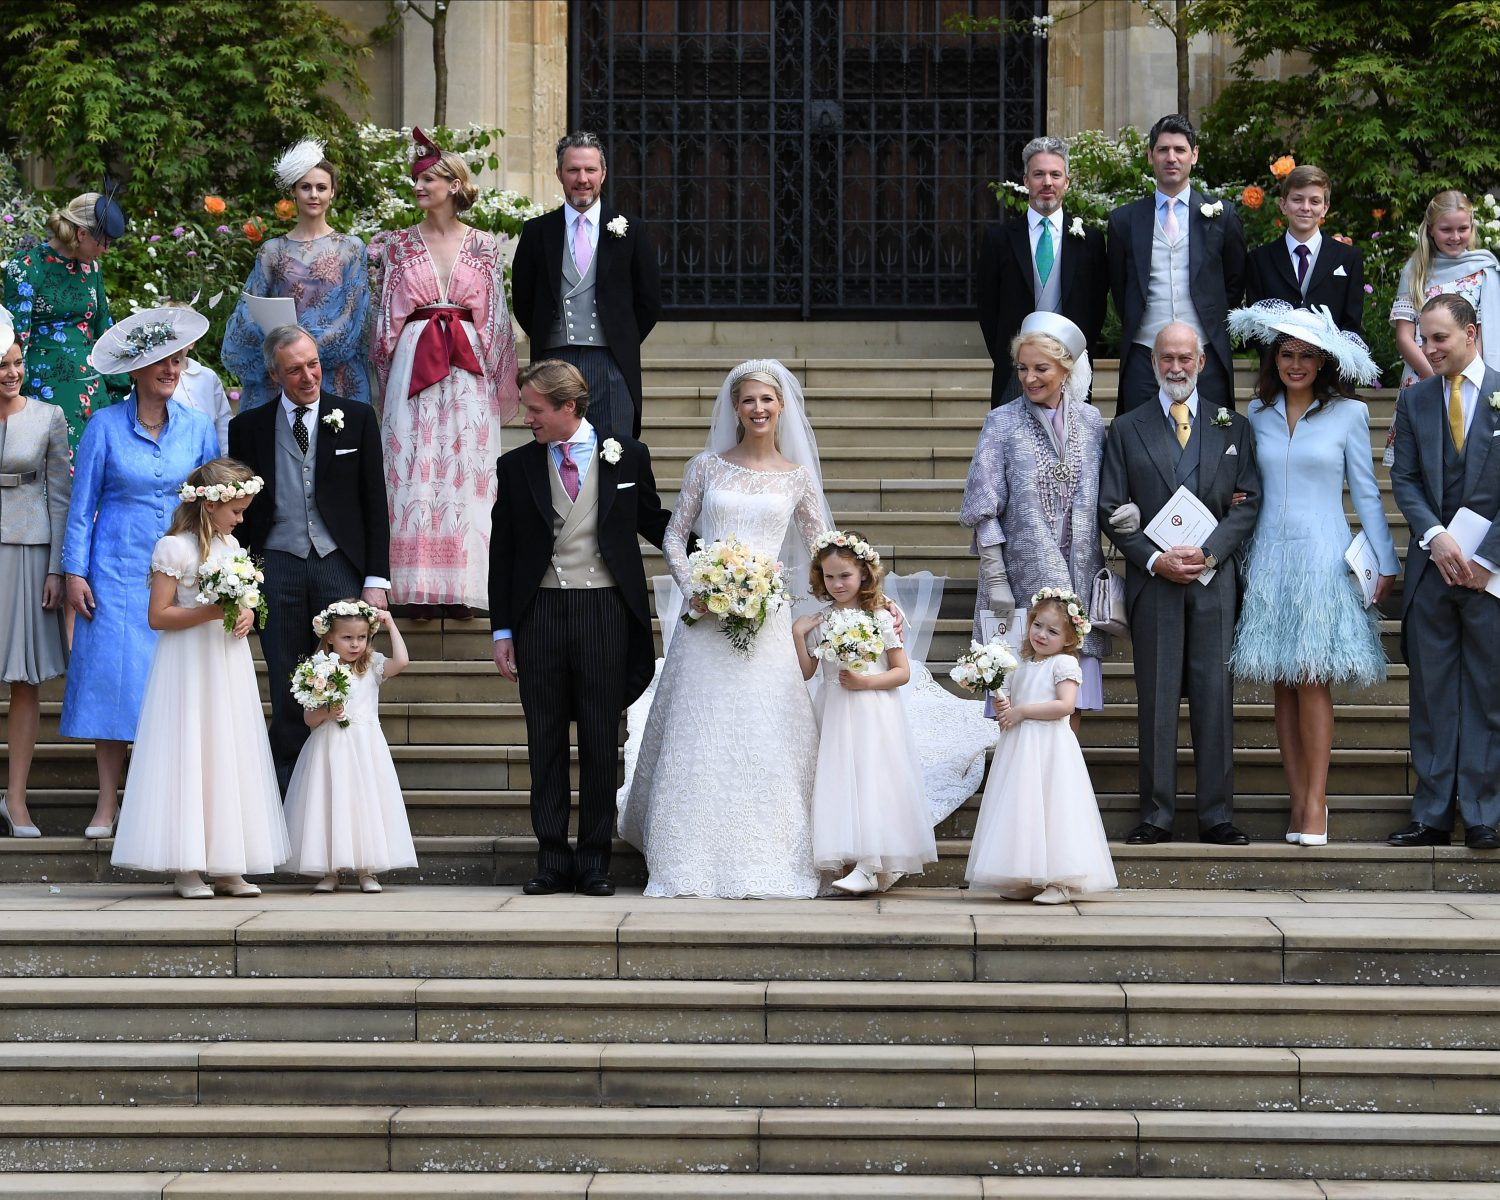 Official Royal Wedding Pictures.Lady Gabriella Windsor S Official Royal Wedding Portraits Are Here